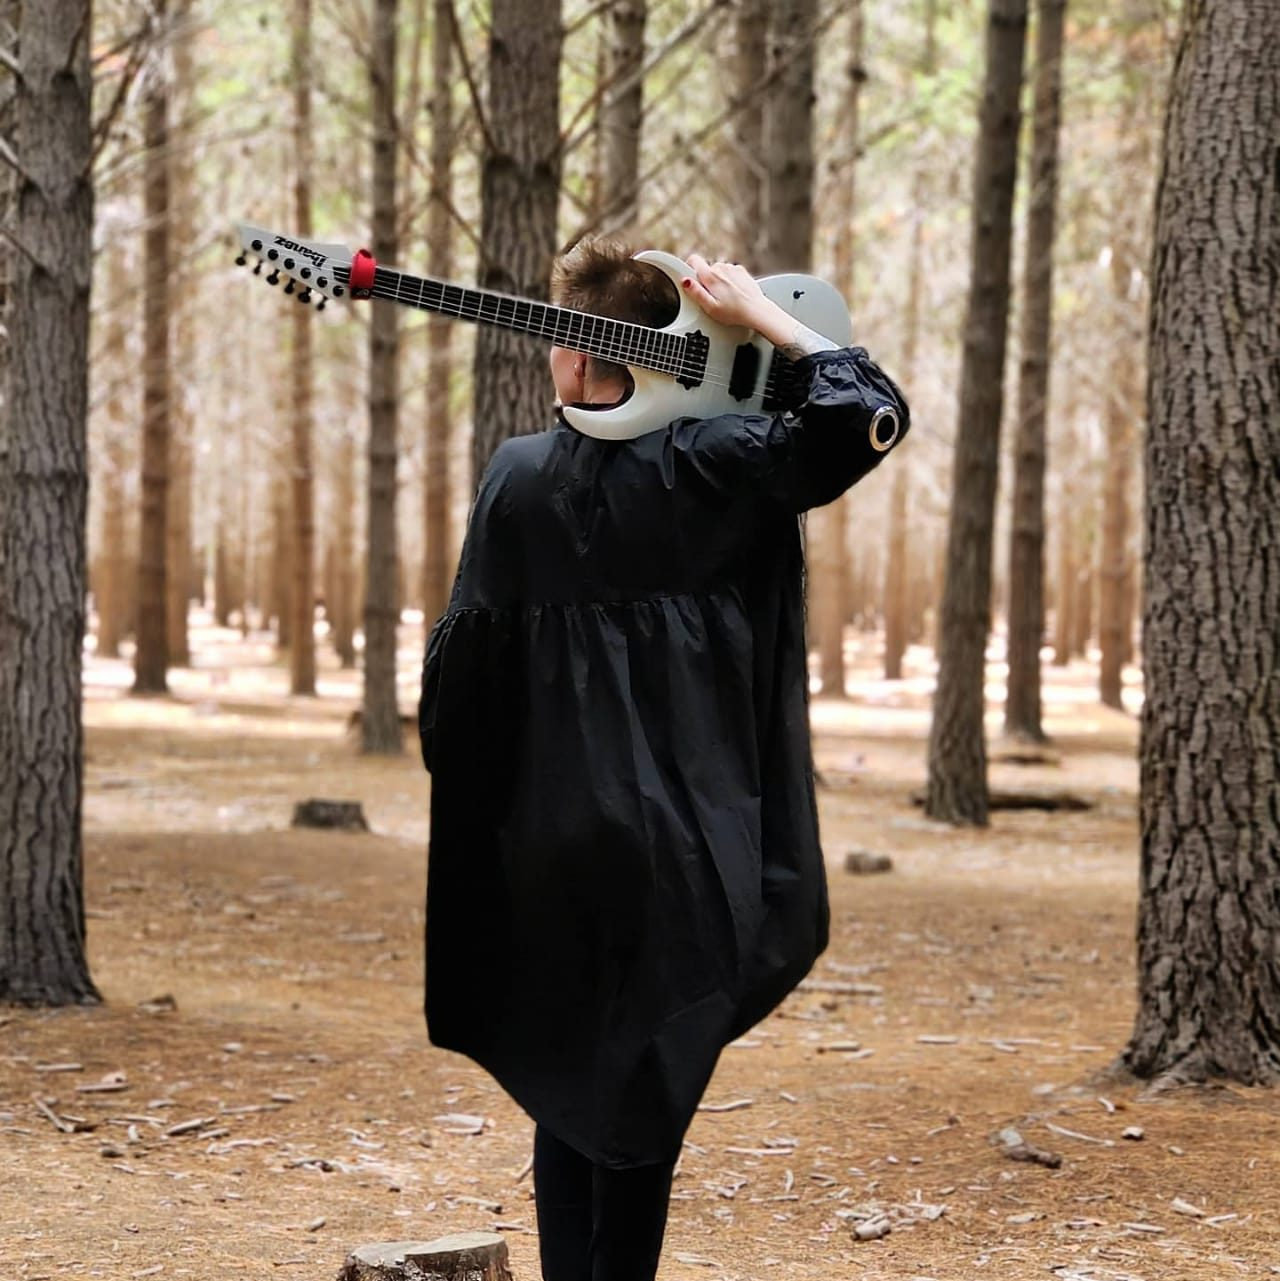 Robyn Ferguson, a musician from South Africa, is holding her Ibanez guitar behind her head while walking through the forest in Cape Town.